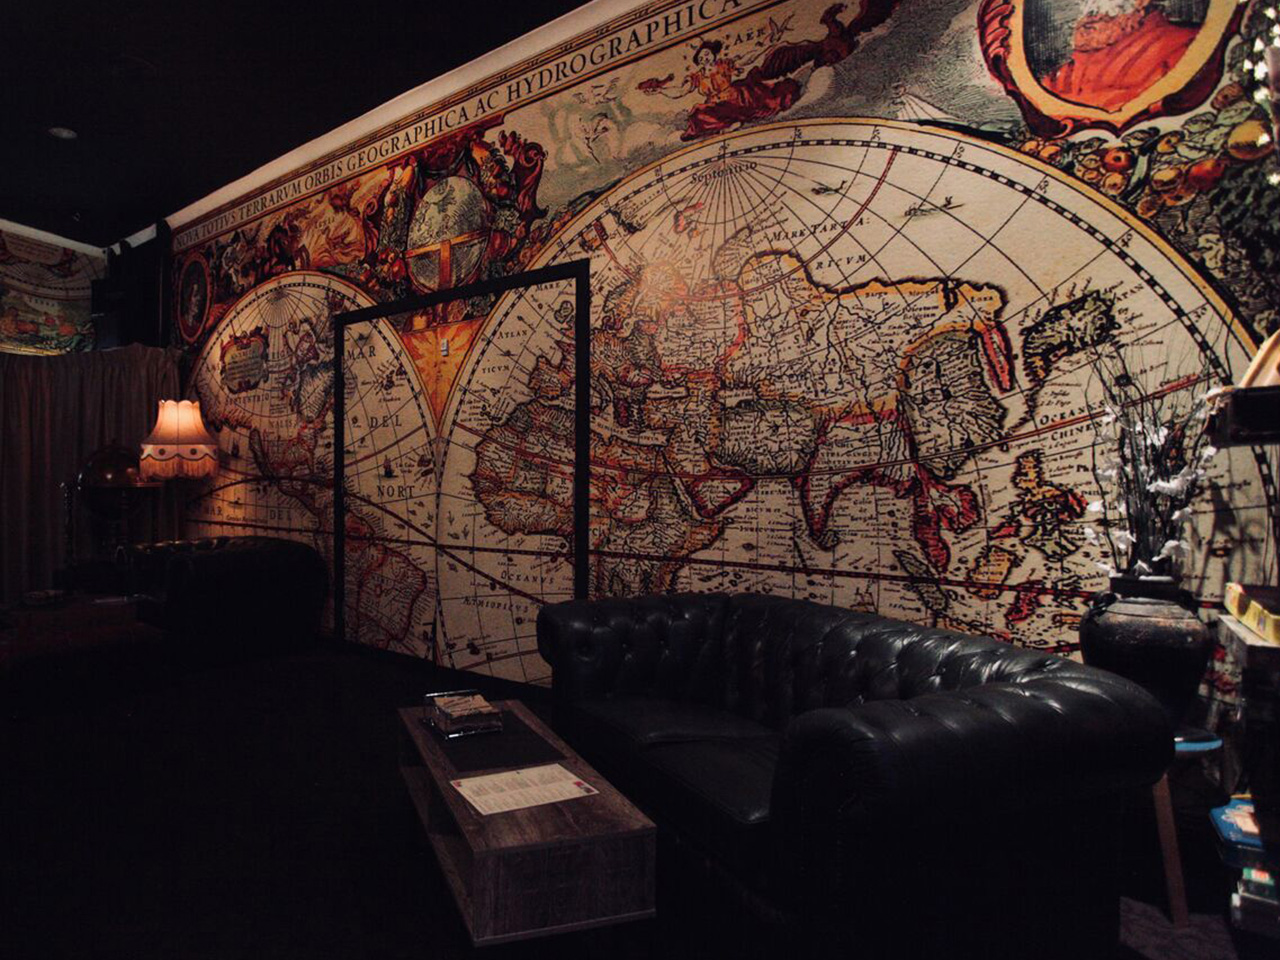 A Center Table, Couch And A Lamp On The Side With A World Map Design On The Wall